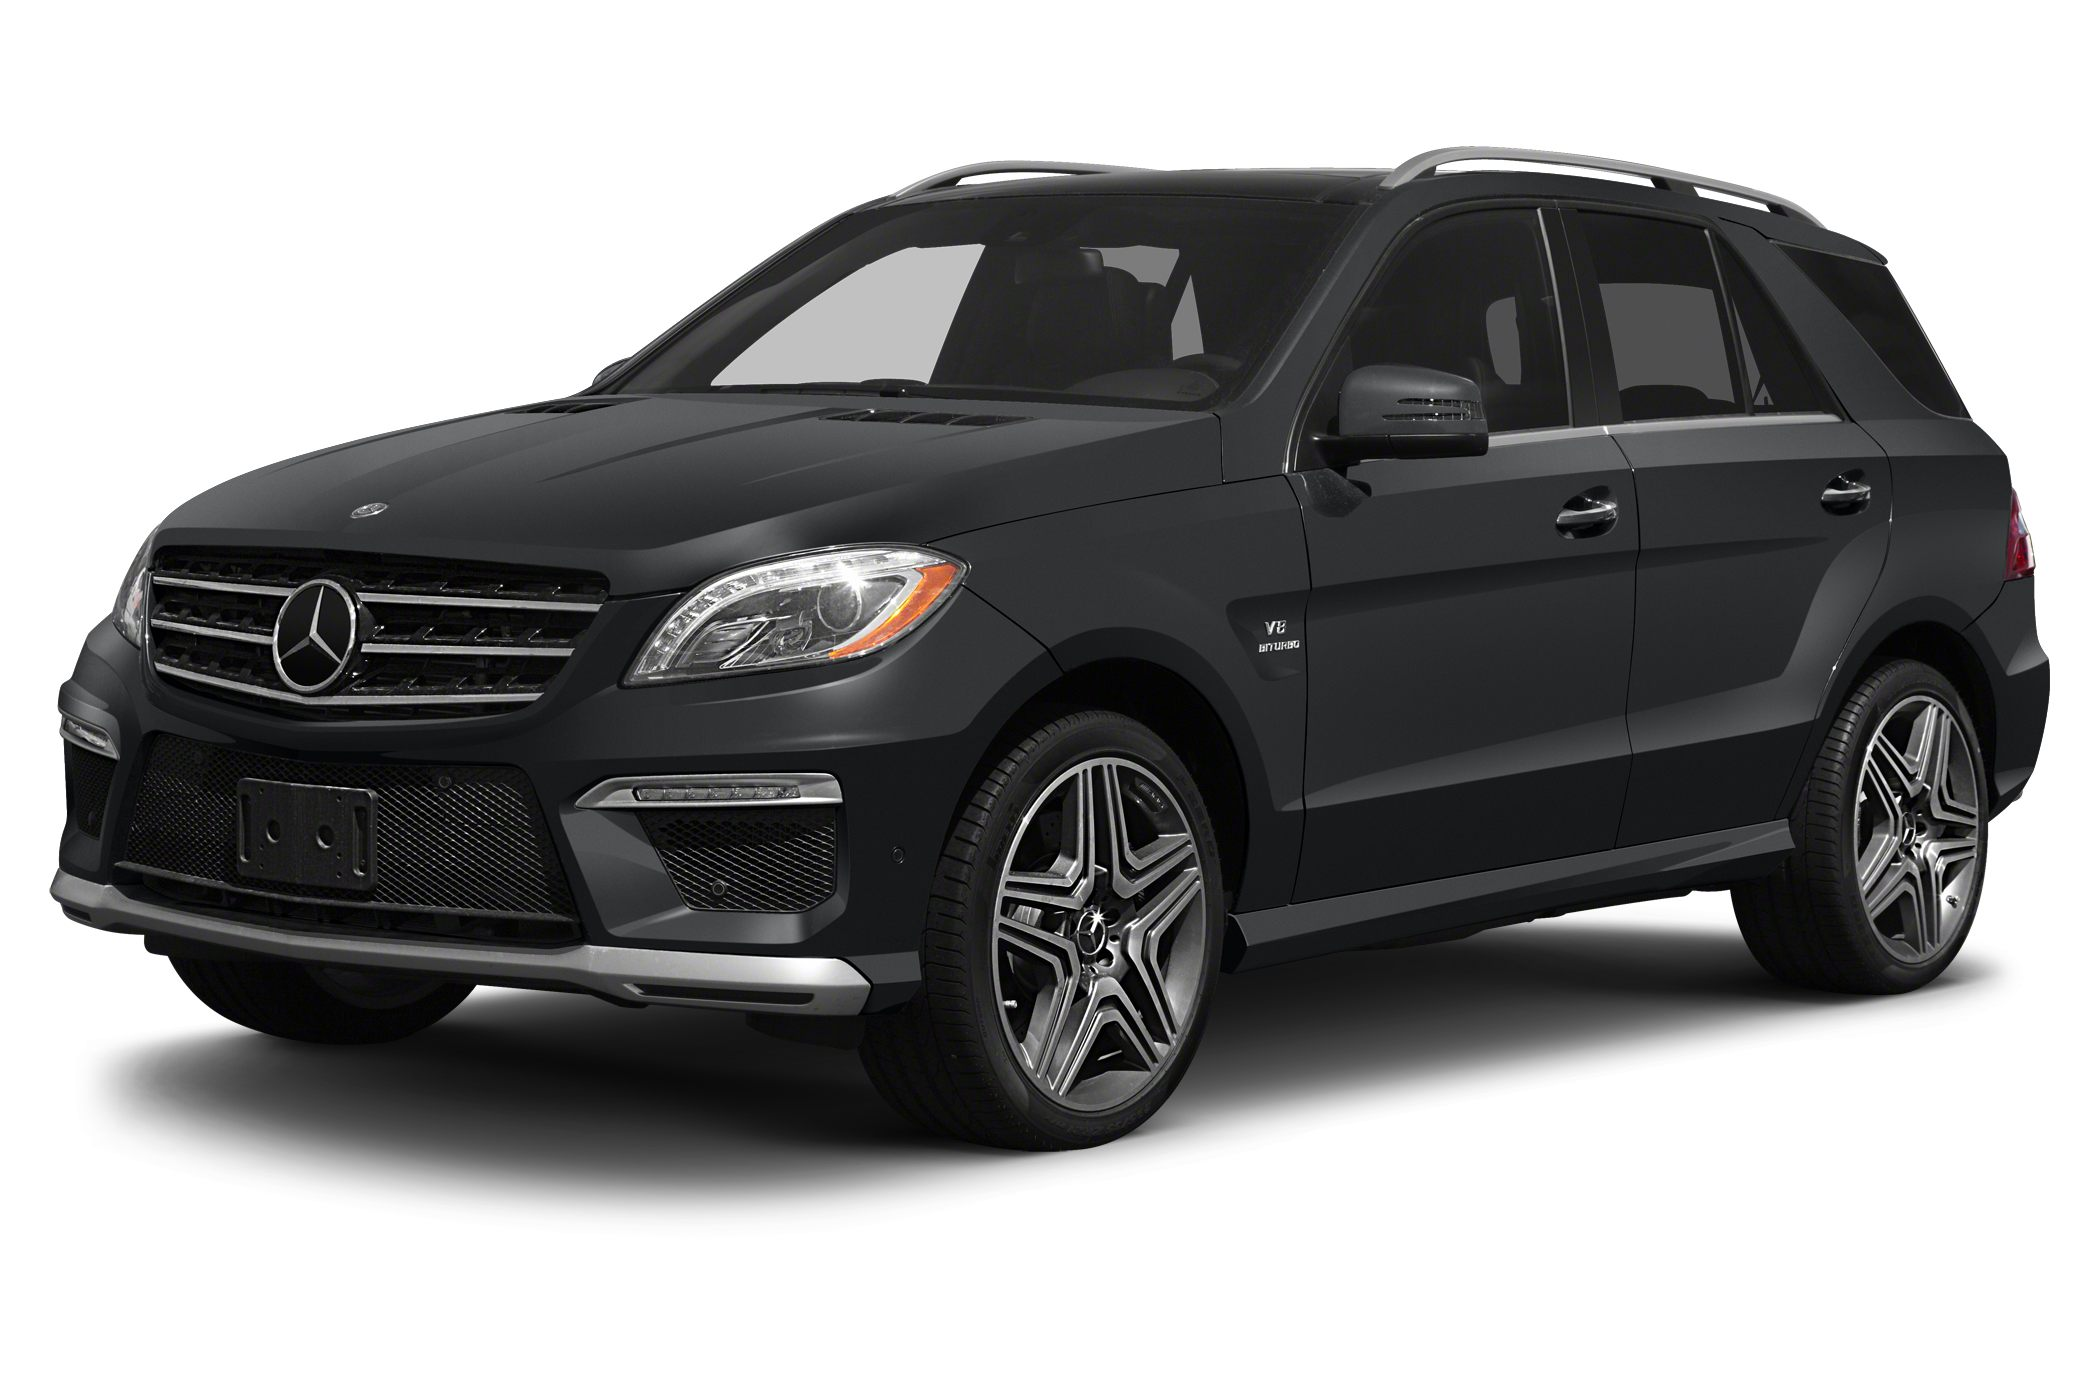 CAC20MBS131A021001 Cool Review About 2012 Mercedes Ml350 Bluetec